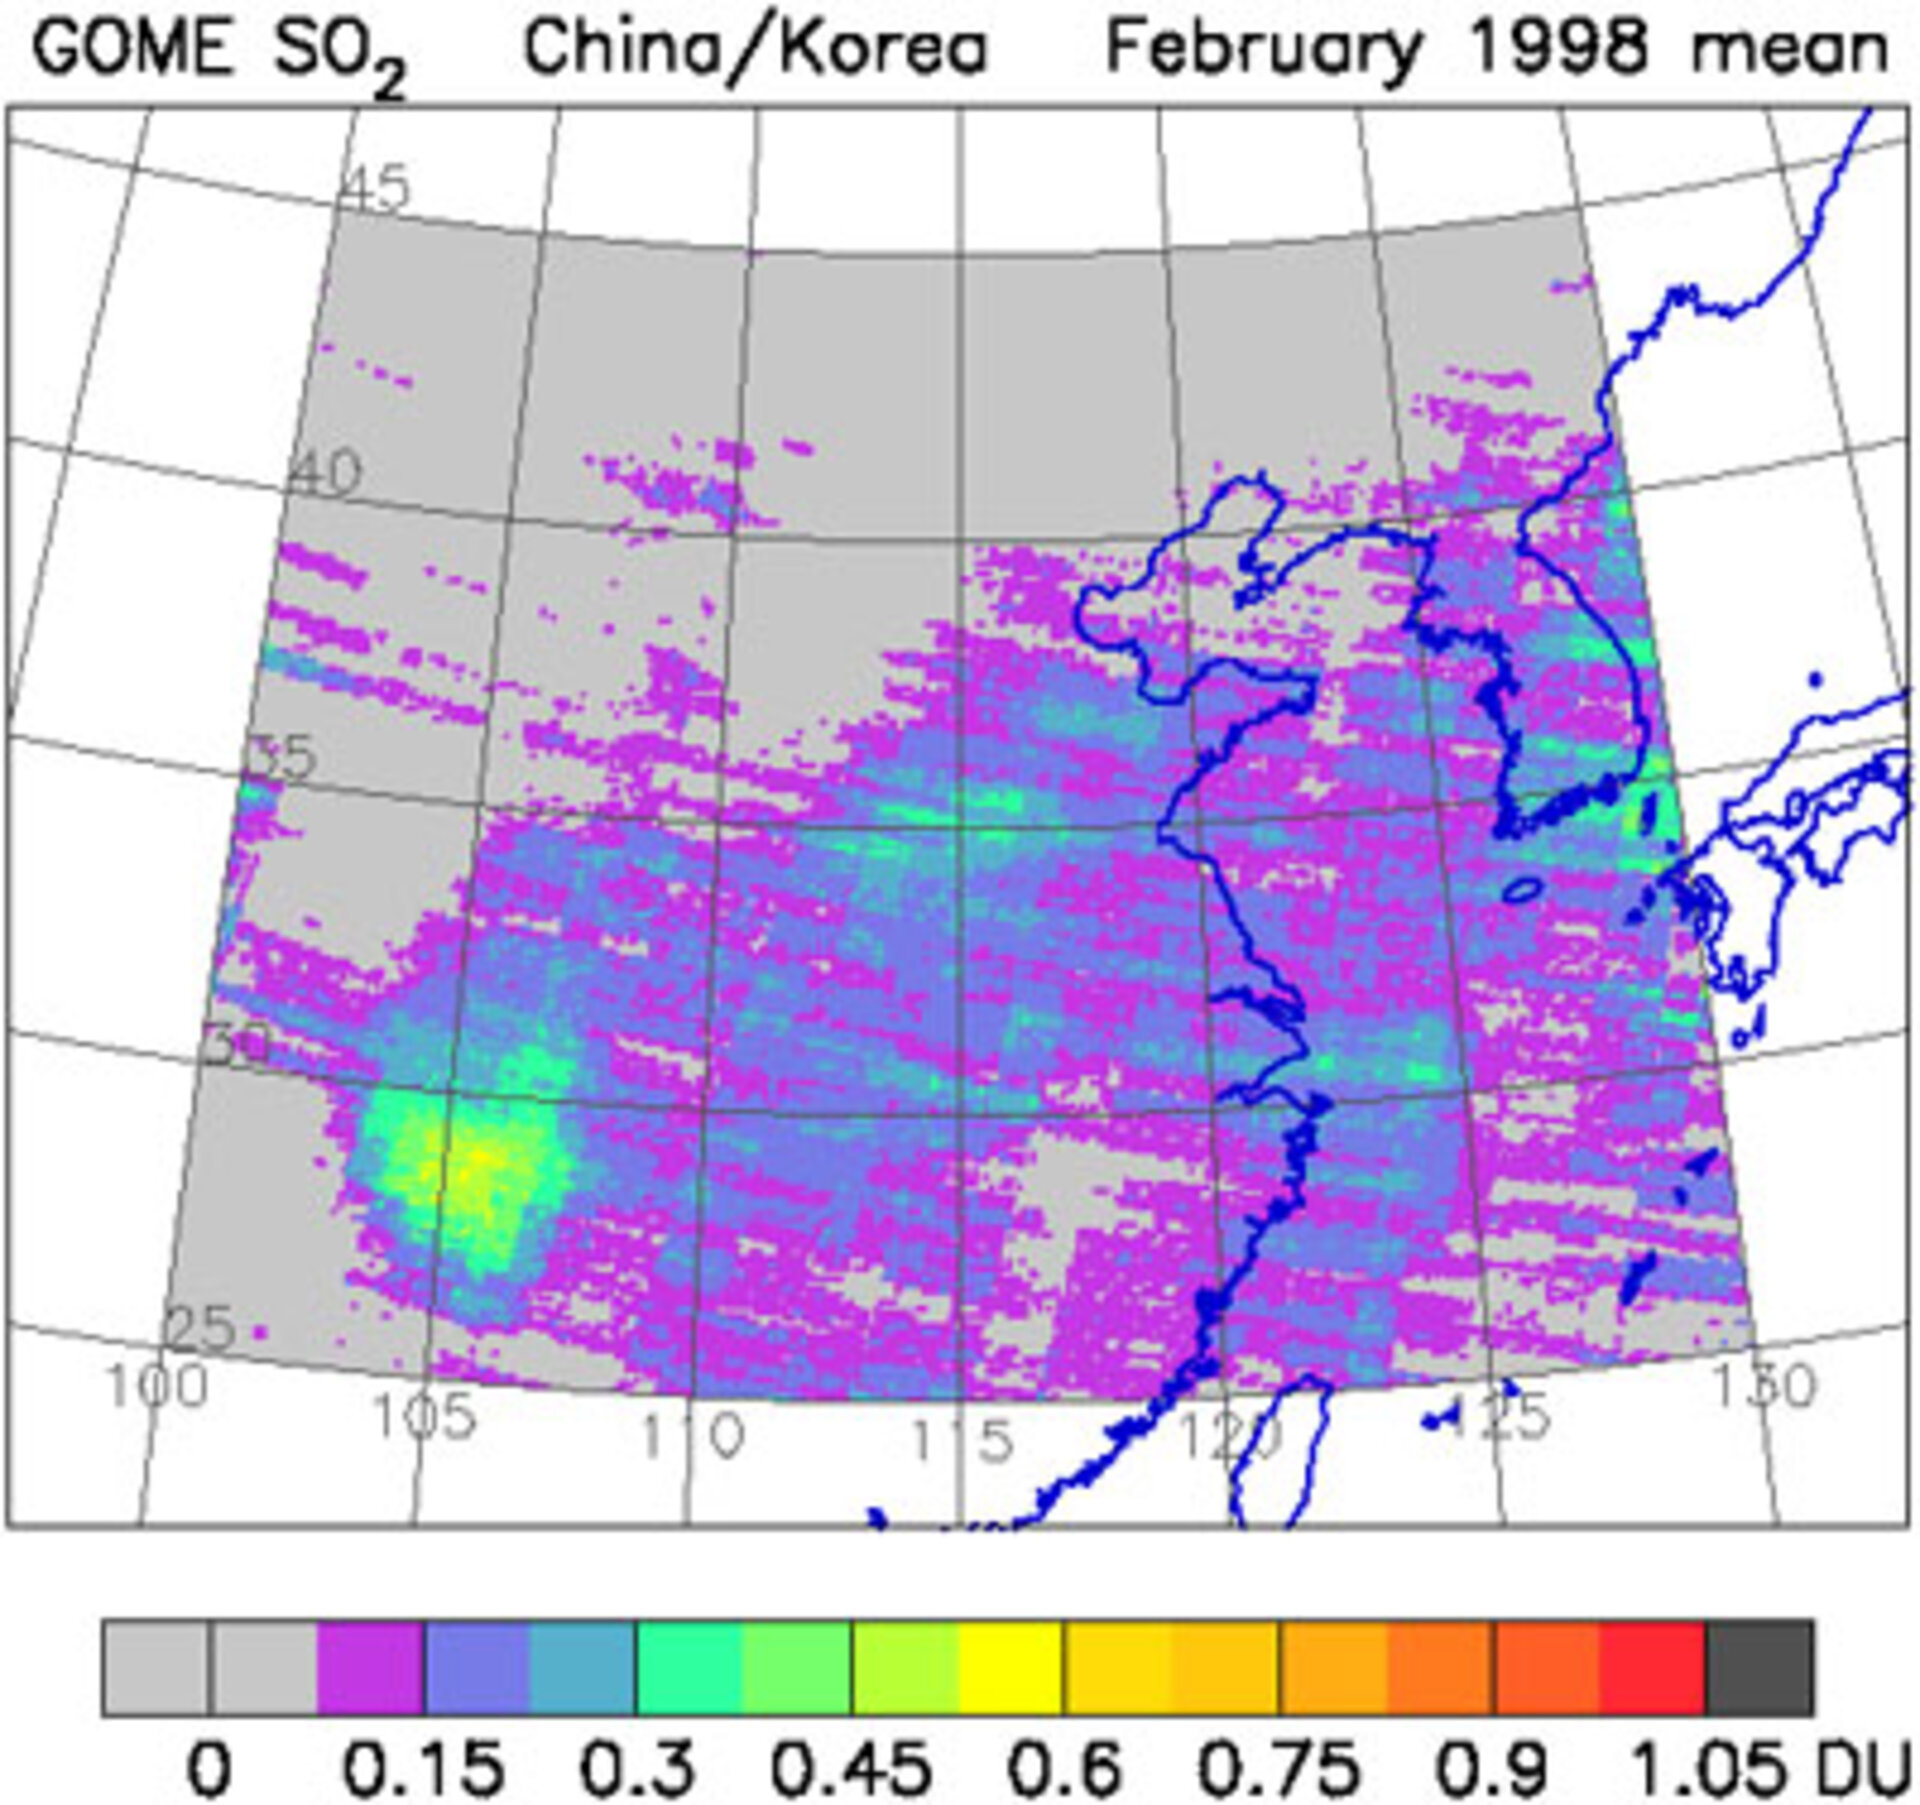 Sulfur dioxide emission over China as measured by GOME